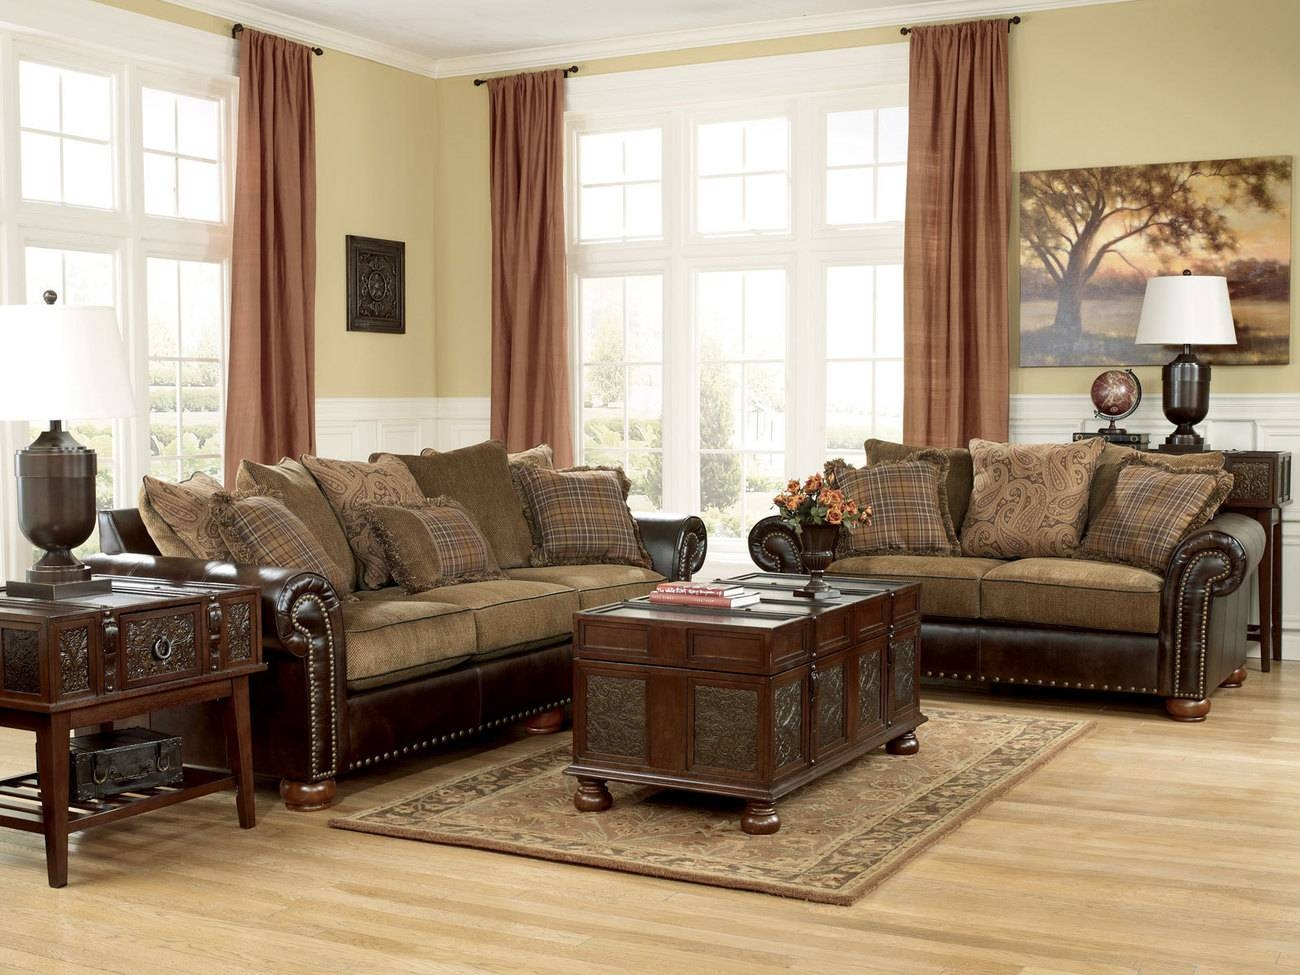 Amazing Leather And Cloth Sectional Sofas 45 About Remodel Abbyson pertaining to Abbyson Living Charlotte Dark Brown Sectional Sofa And Ottoman (Image 4 of 30)